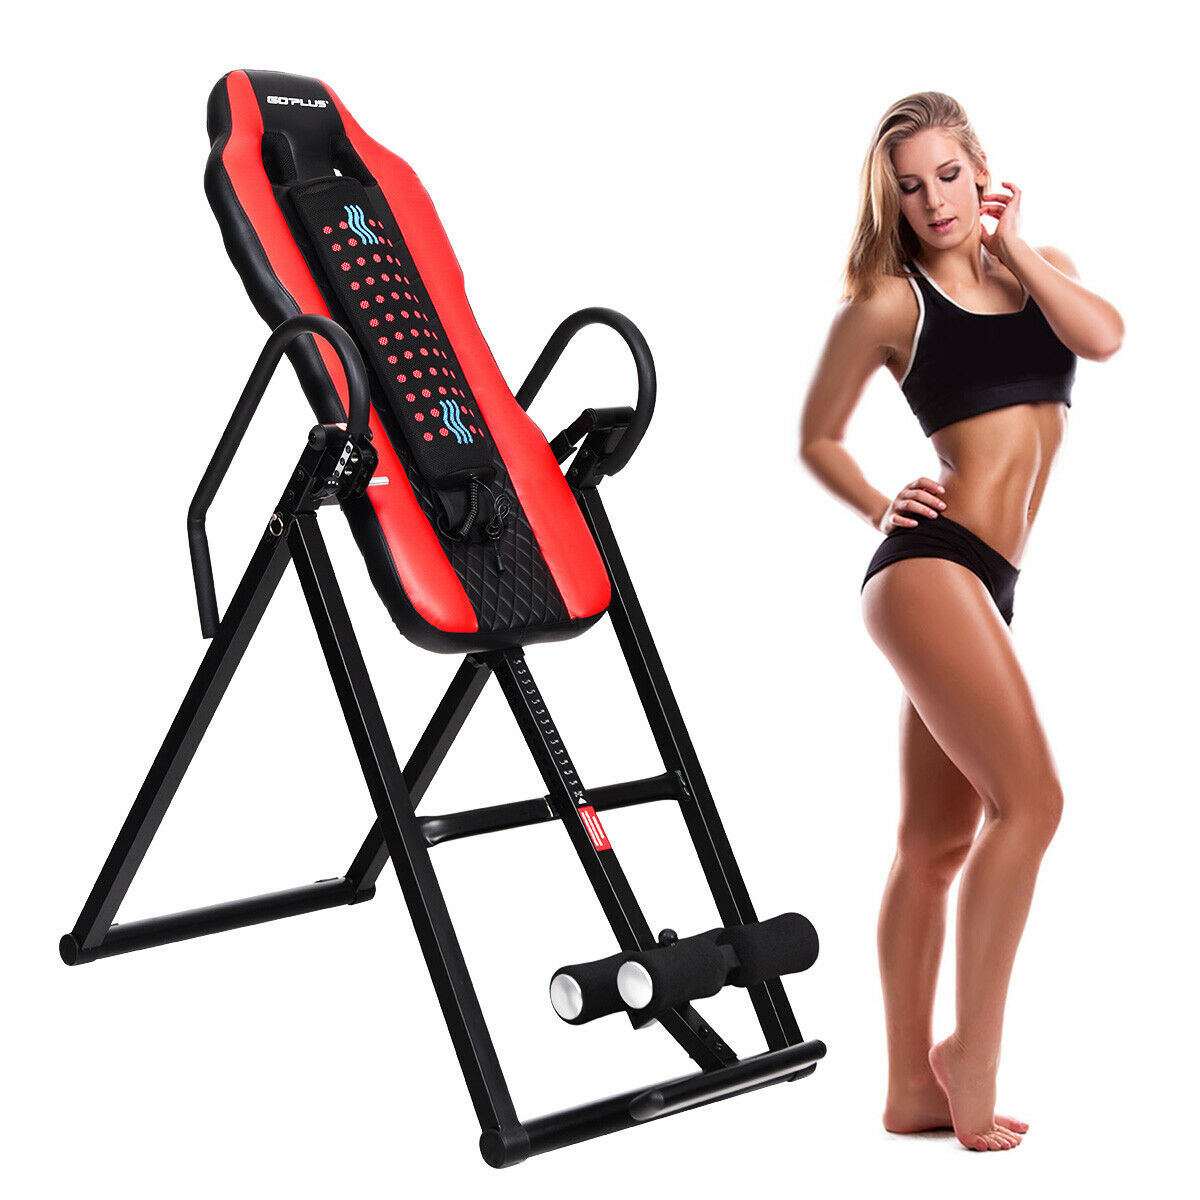 Goplus Heat & Massage Therapeutic Inversion Table Comfort Foam Backrest Fitness Therapy